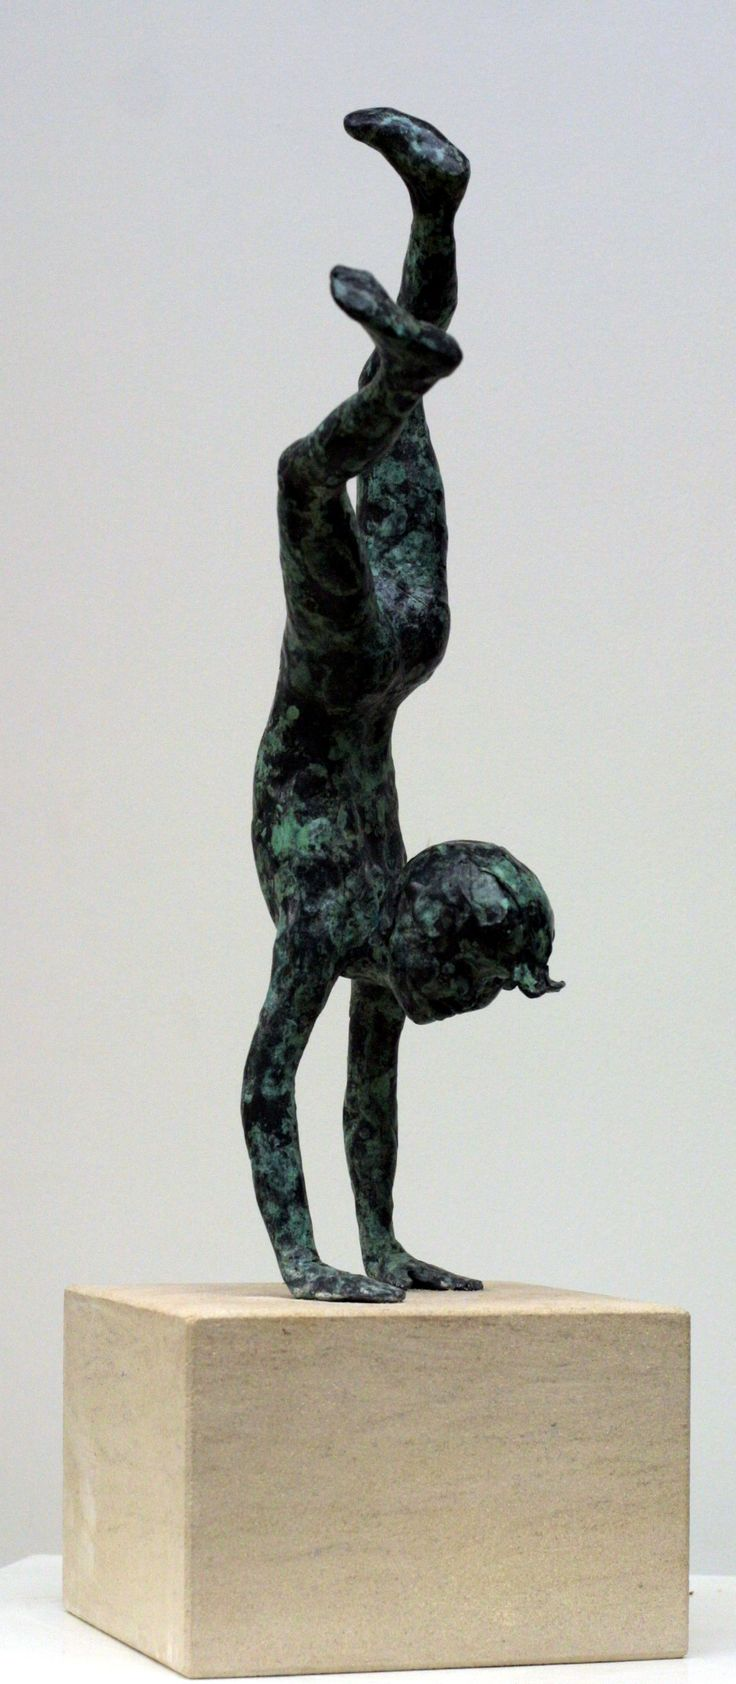 'Cartwheeler' by Alison Bell available at www.creativeartsgallery.com